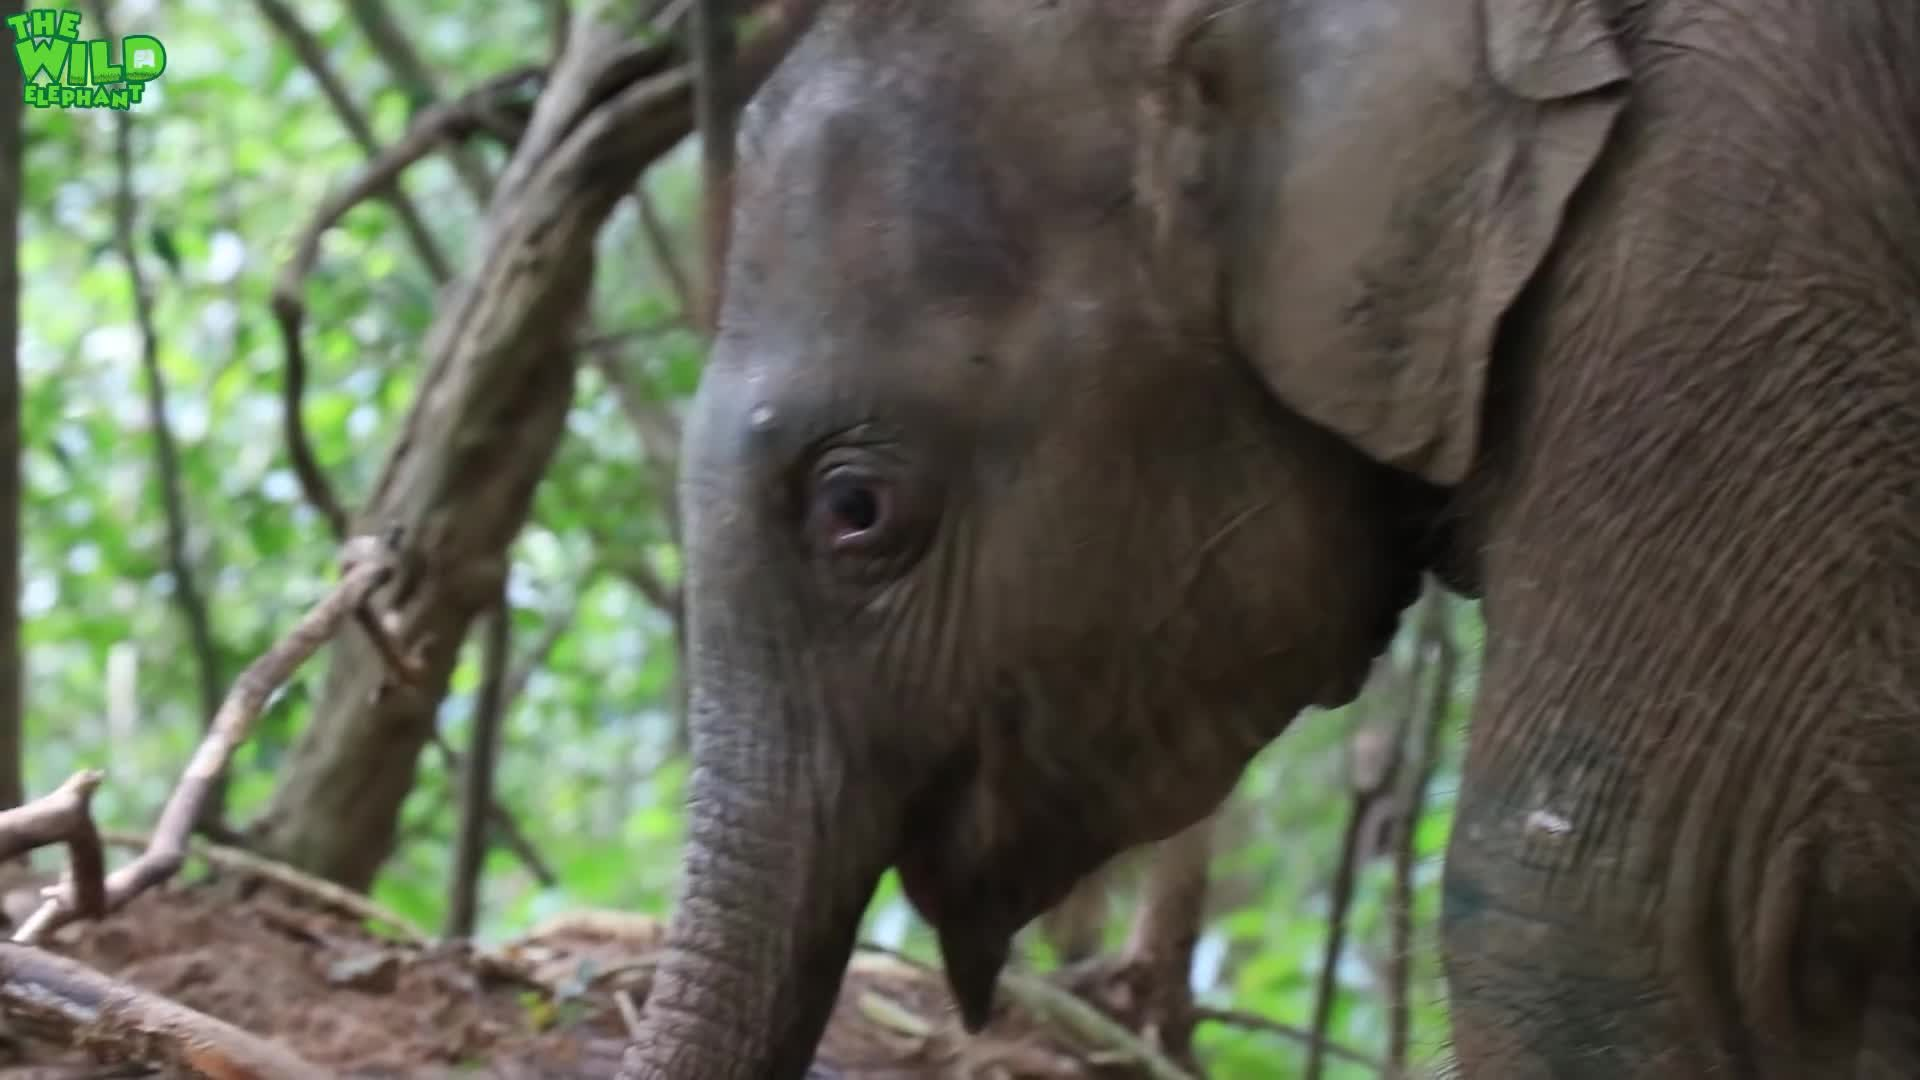 THE WILD ELEPHANT, elefanten videos, elephant save human, elephas maximus, huge elephant rescue, lephant rescue video youtube, quite baby elephant funny kids videos, sri lankan elephants, sri lankan wild videos, the wild elephant youtube channel, This cute baby elephant has his first jungle experience after being saved GIFs